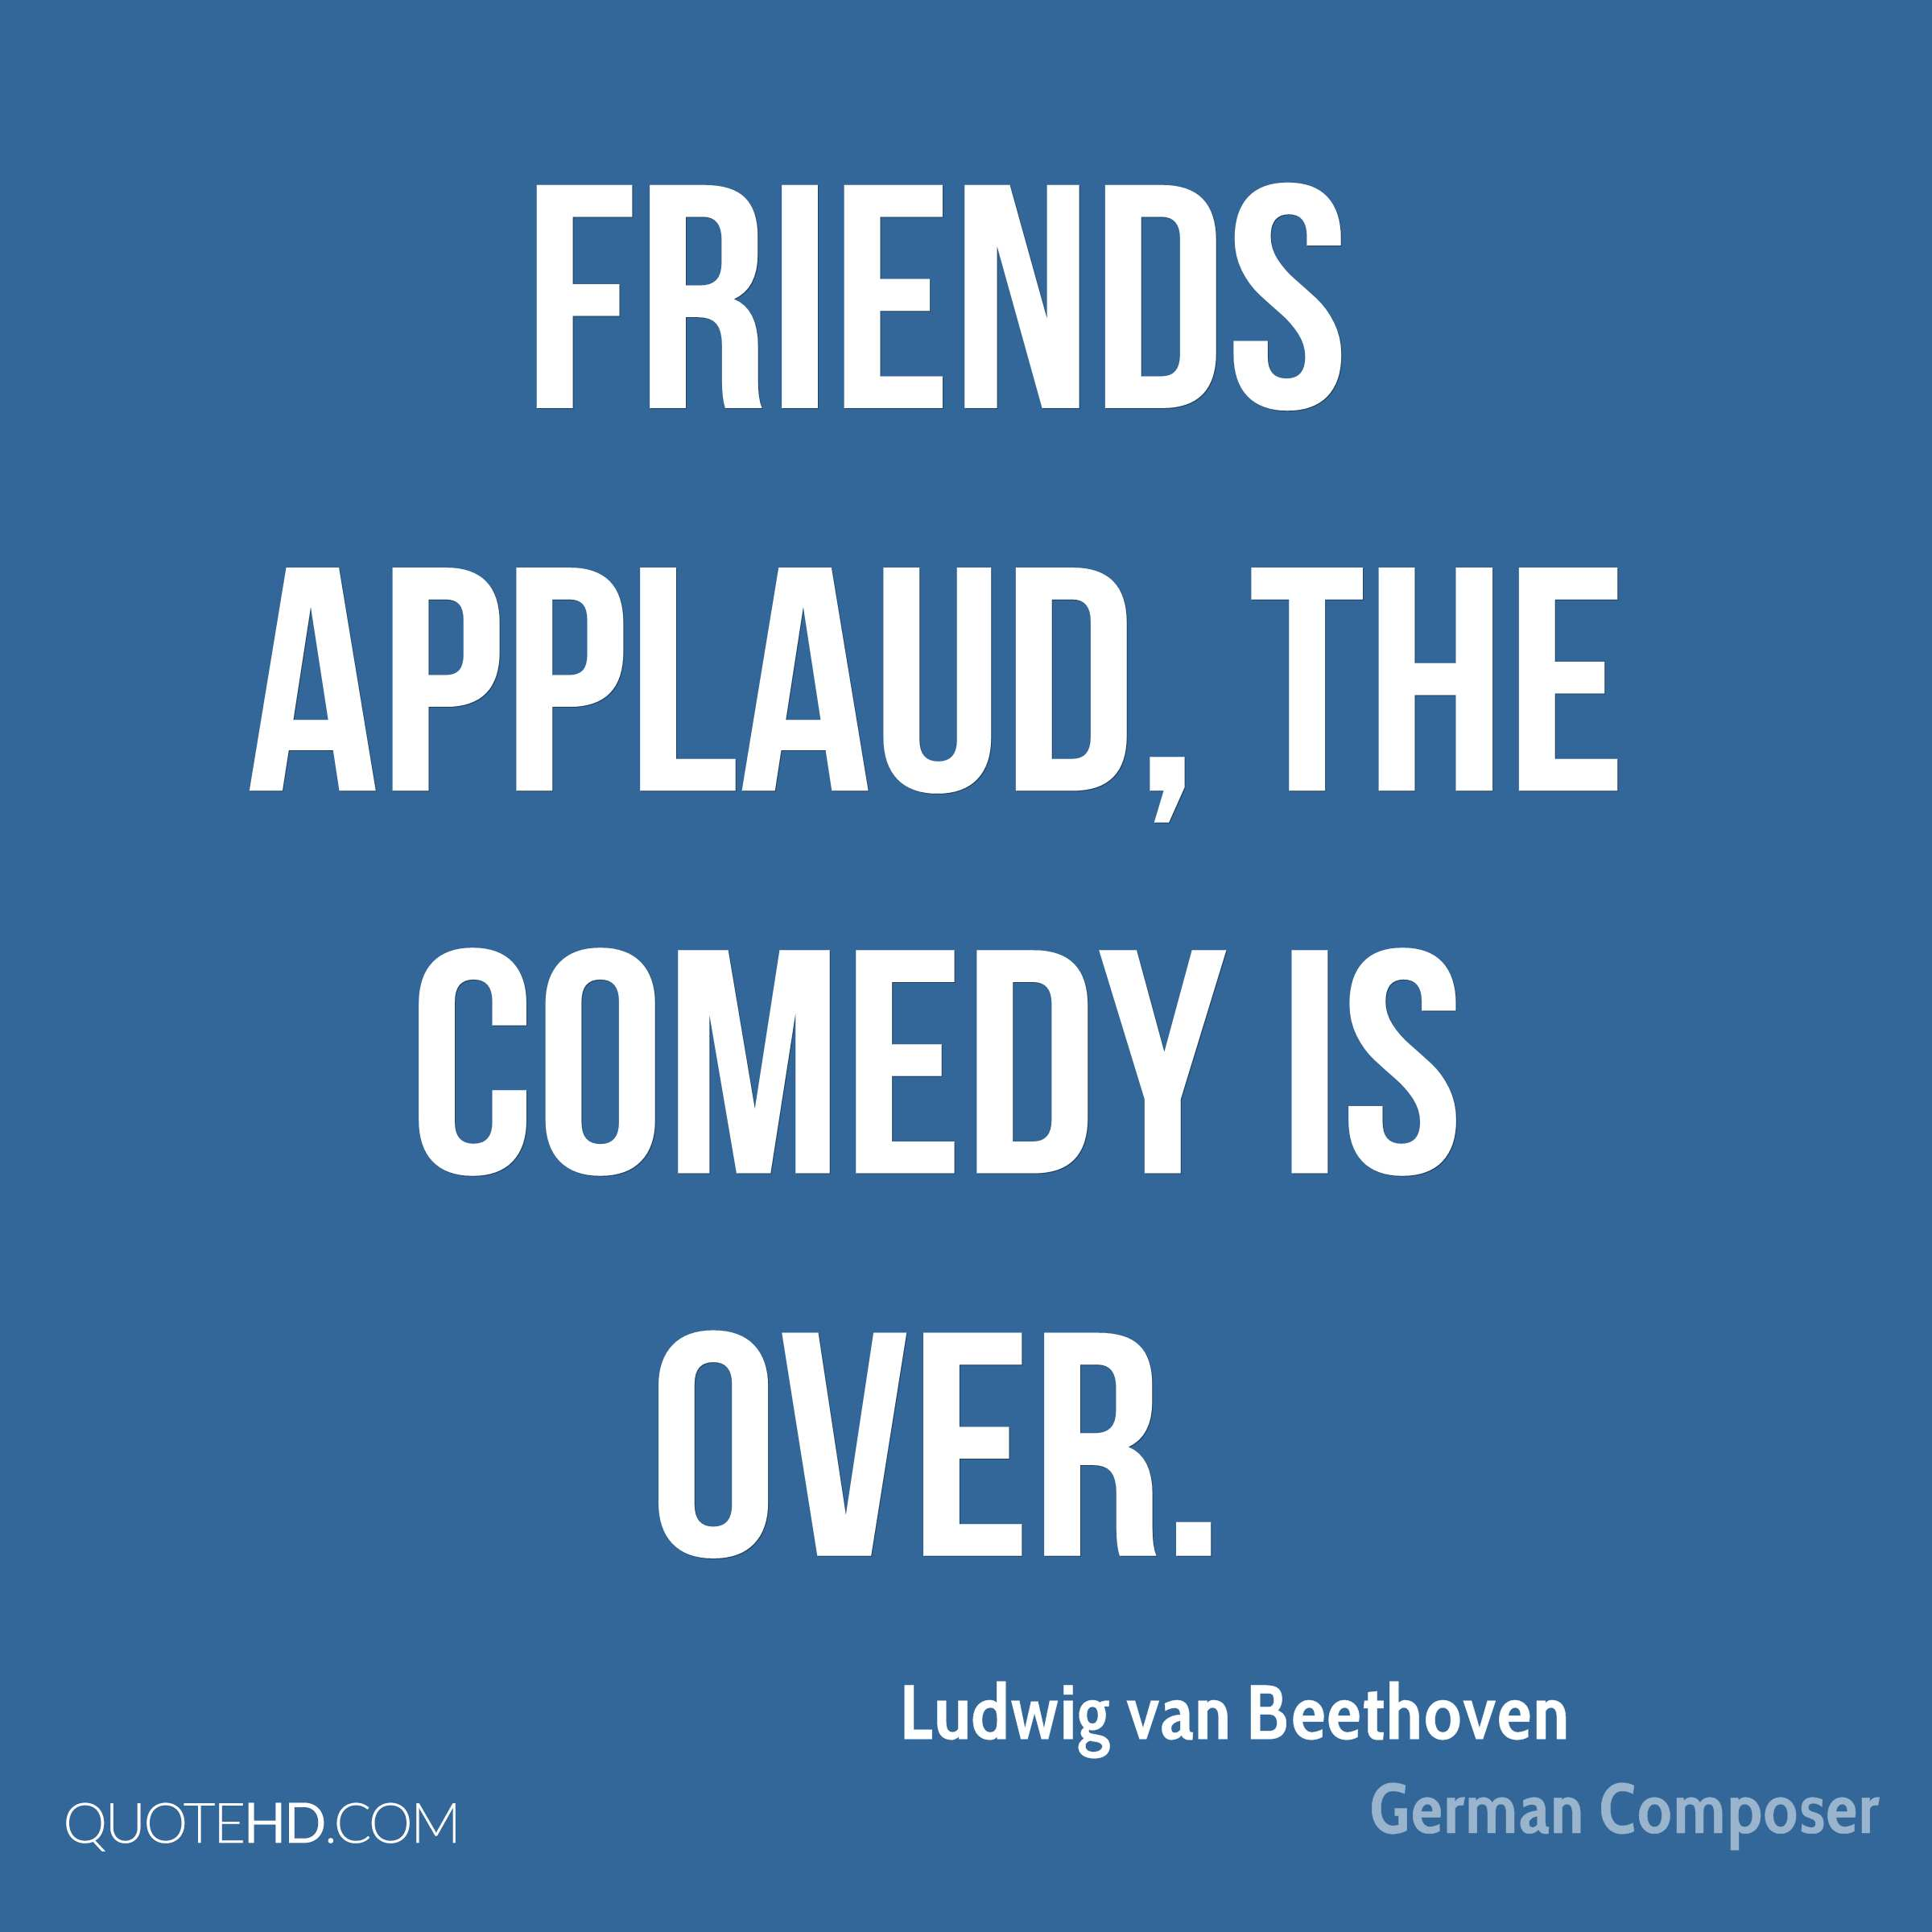 Friends Applaud The Comedy Is Over